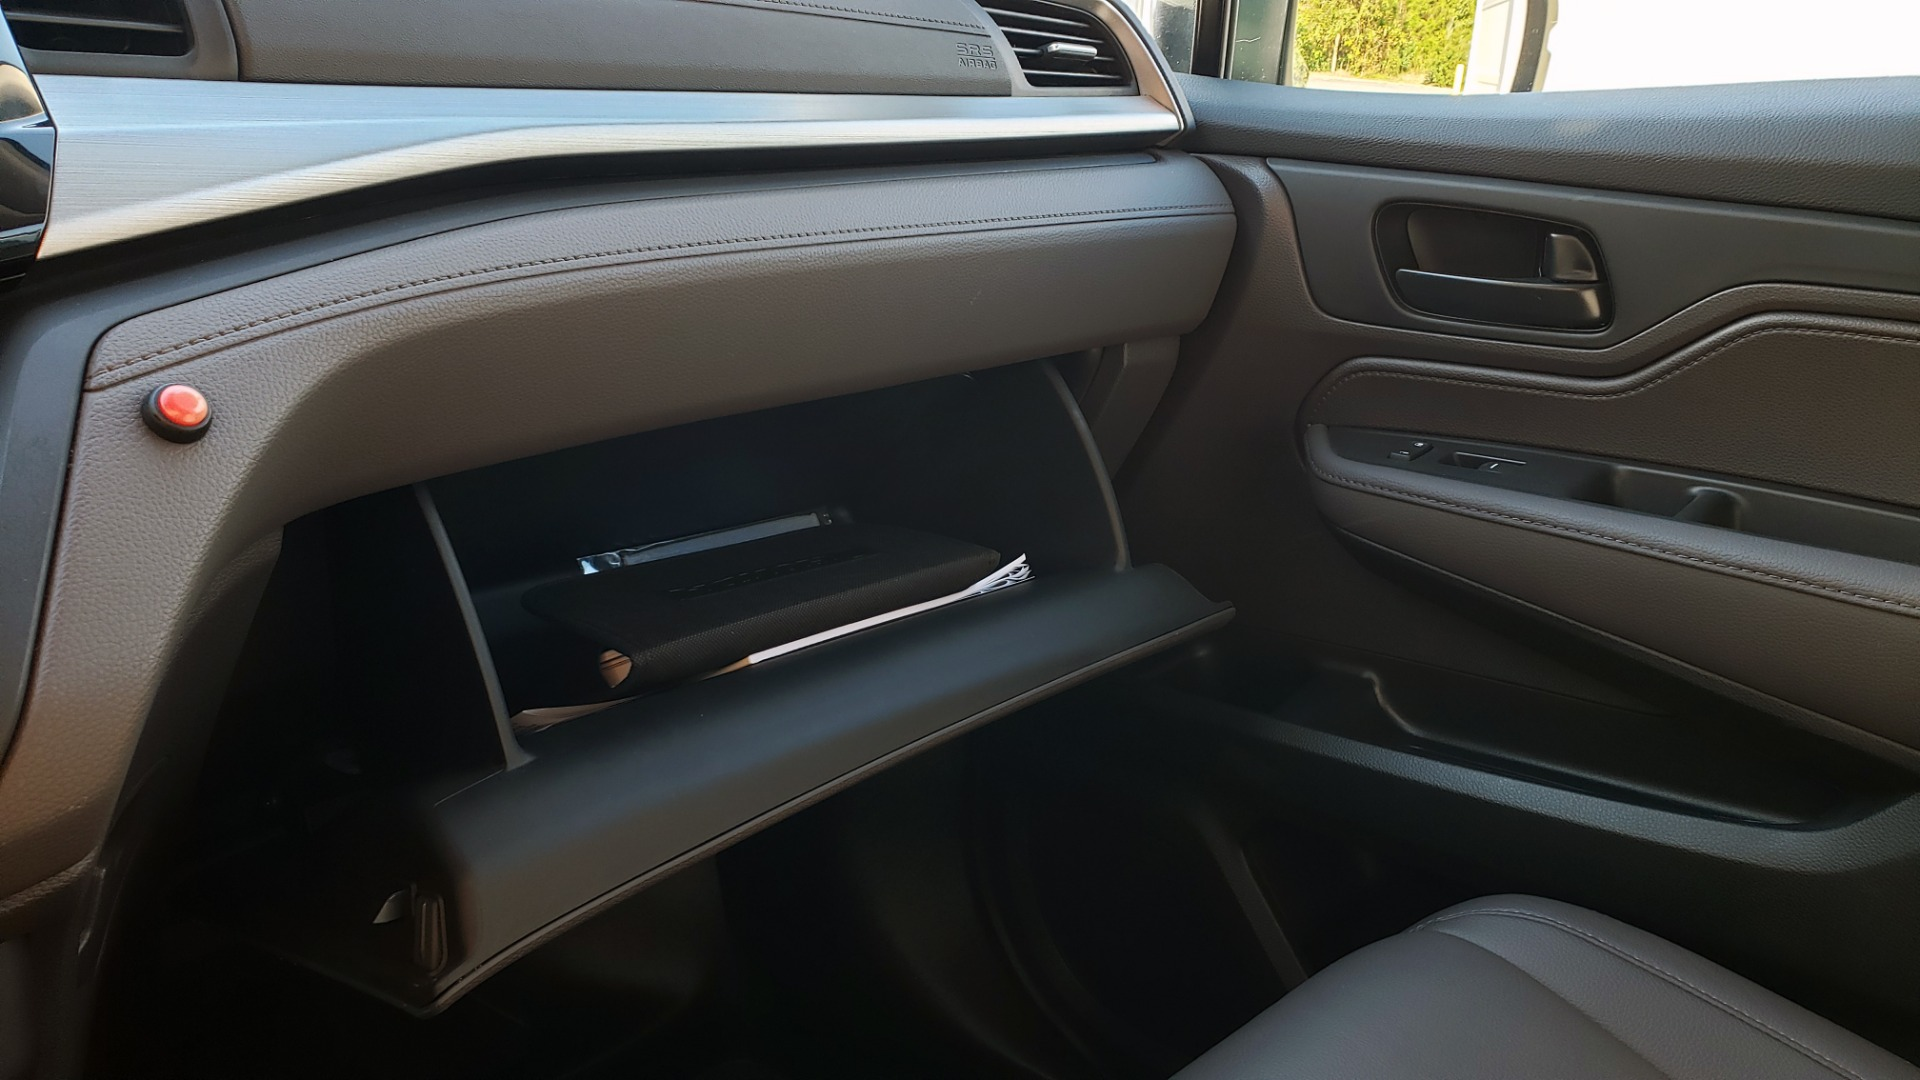 Used 2019 Honda ODYSSEY EX-L BRAUNABILITY / NAV / RES / LKA / BLUE-RAY / SUNROOF / REARVIEW for sale Sold at Formula Imports in Charlotte NC 28227 28